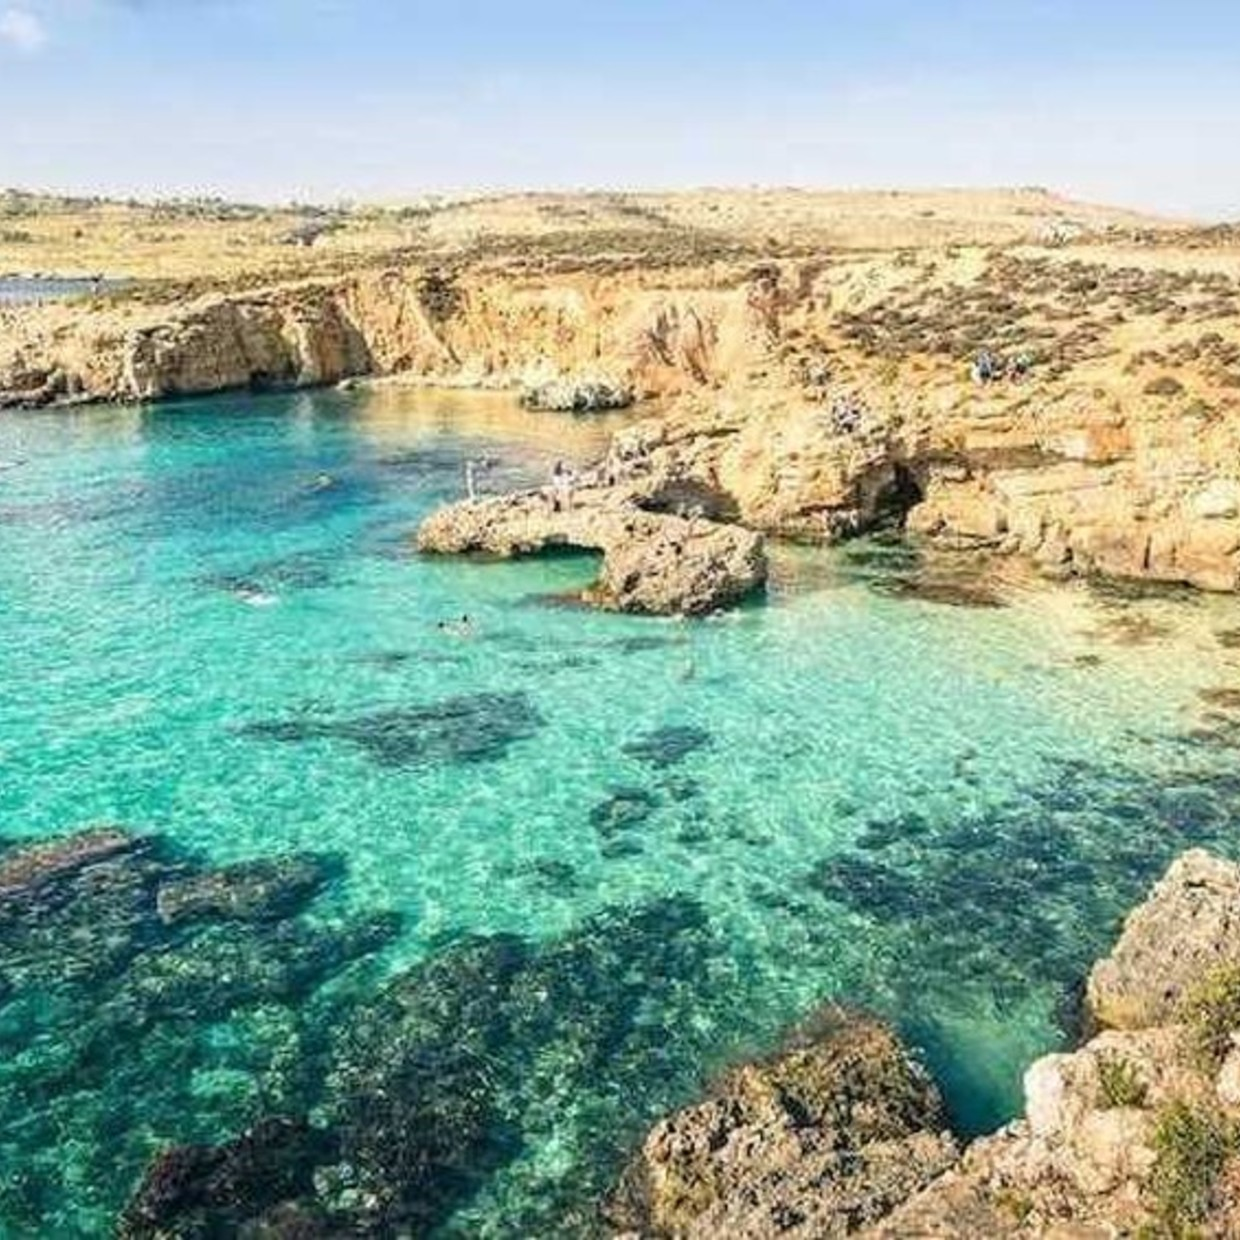 Enjoy your summer by traveling all around the world ✈️🌎😁 #snorkeling #minidive #malta #travel #sea #wonderful #landscapes   Find our products on our website : www.minidive.com